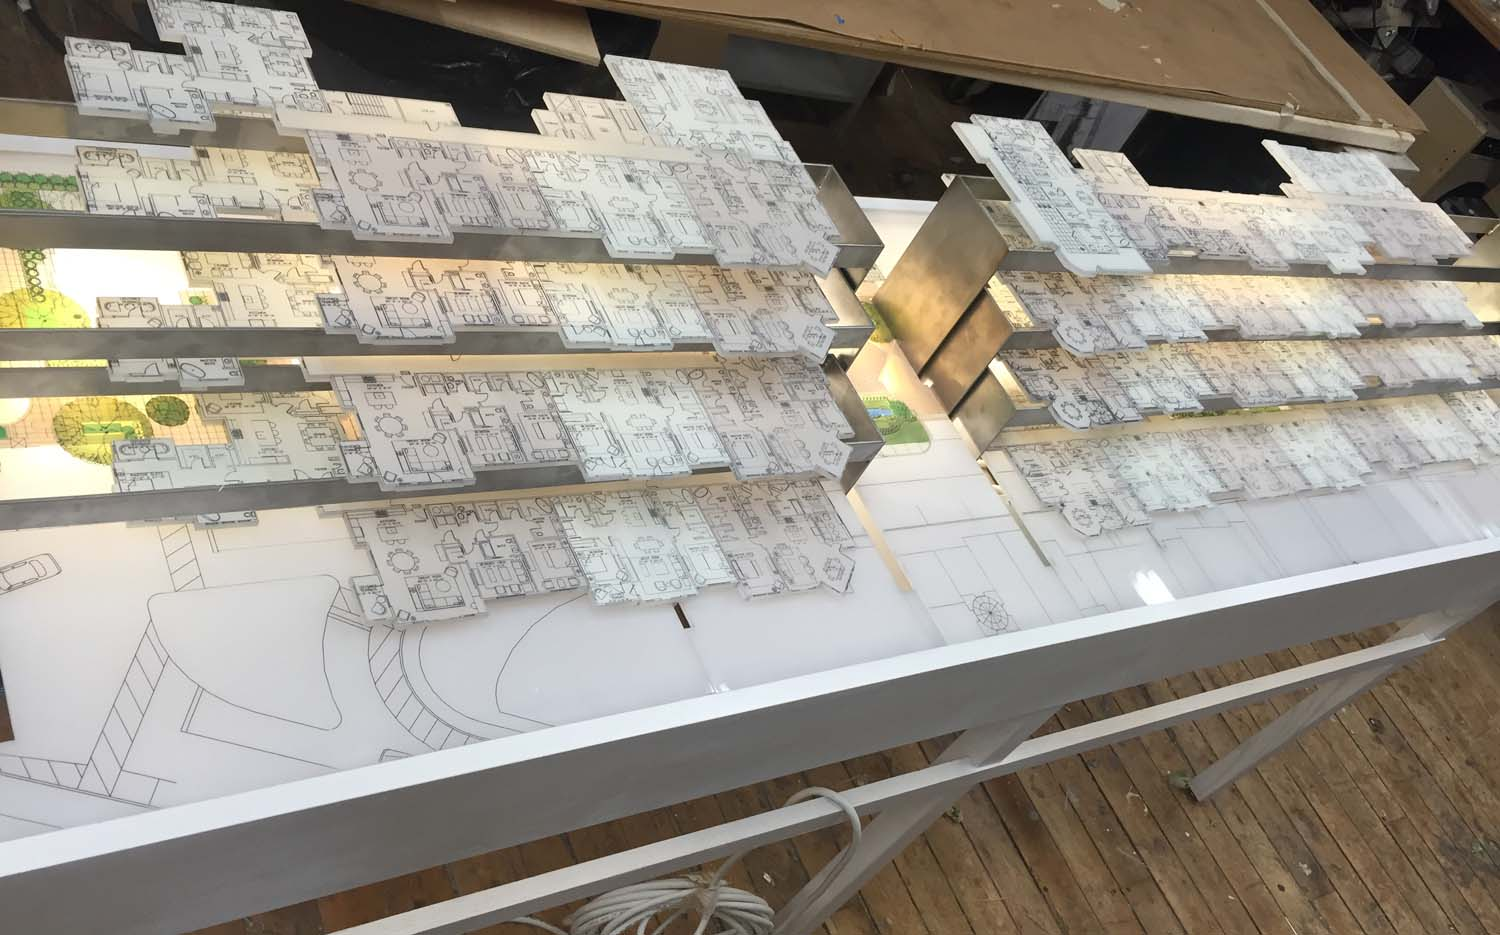 This was a floor plan model for a real estate company. The floors slide forward and back, so you can pick your condo while visualizing where is it in the building.